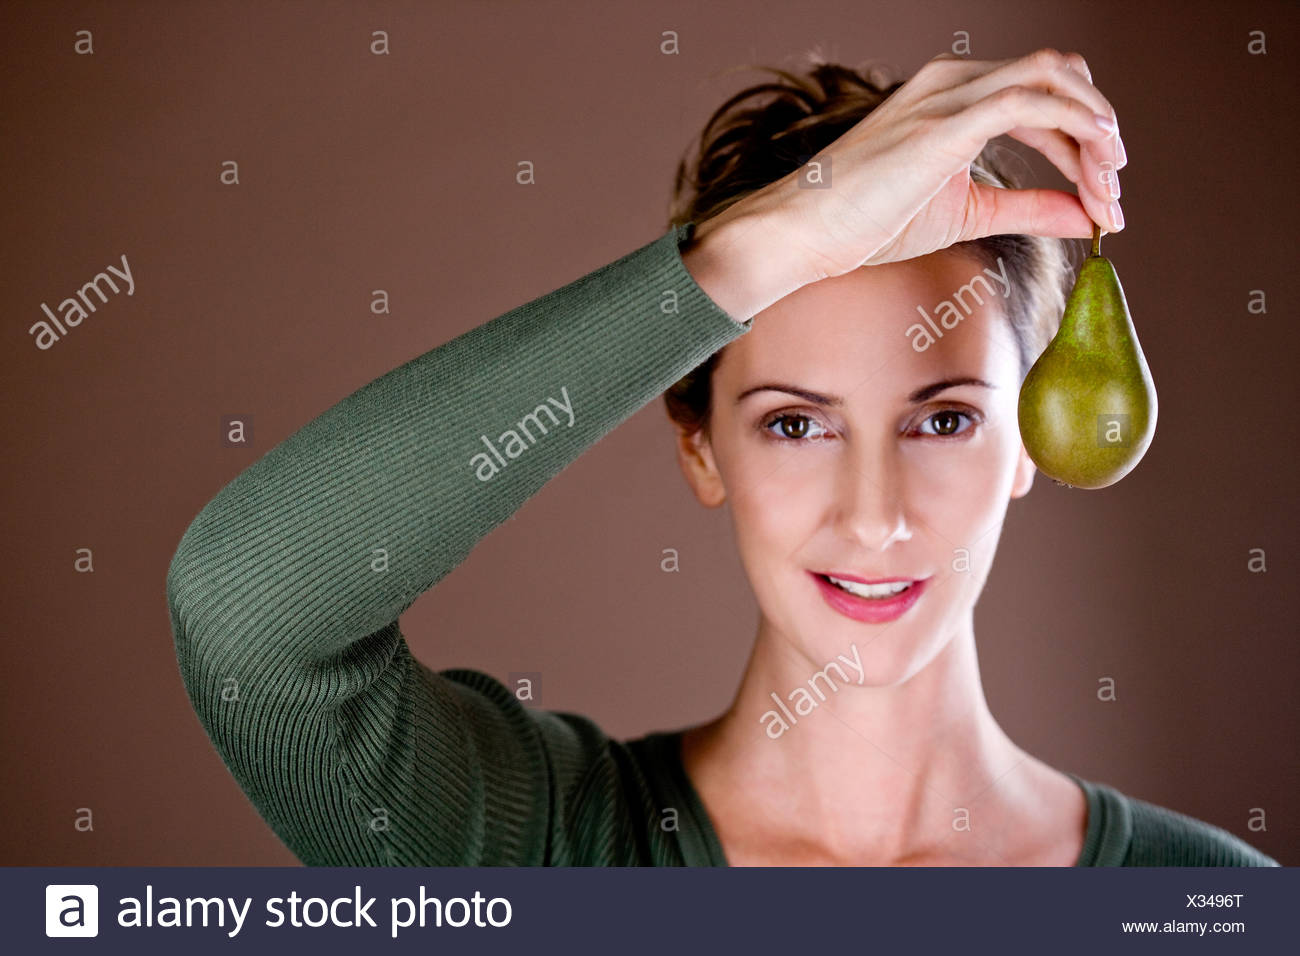 A mid adult woman holding a pear - Stock Image